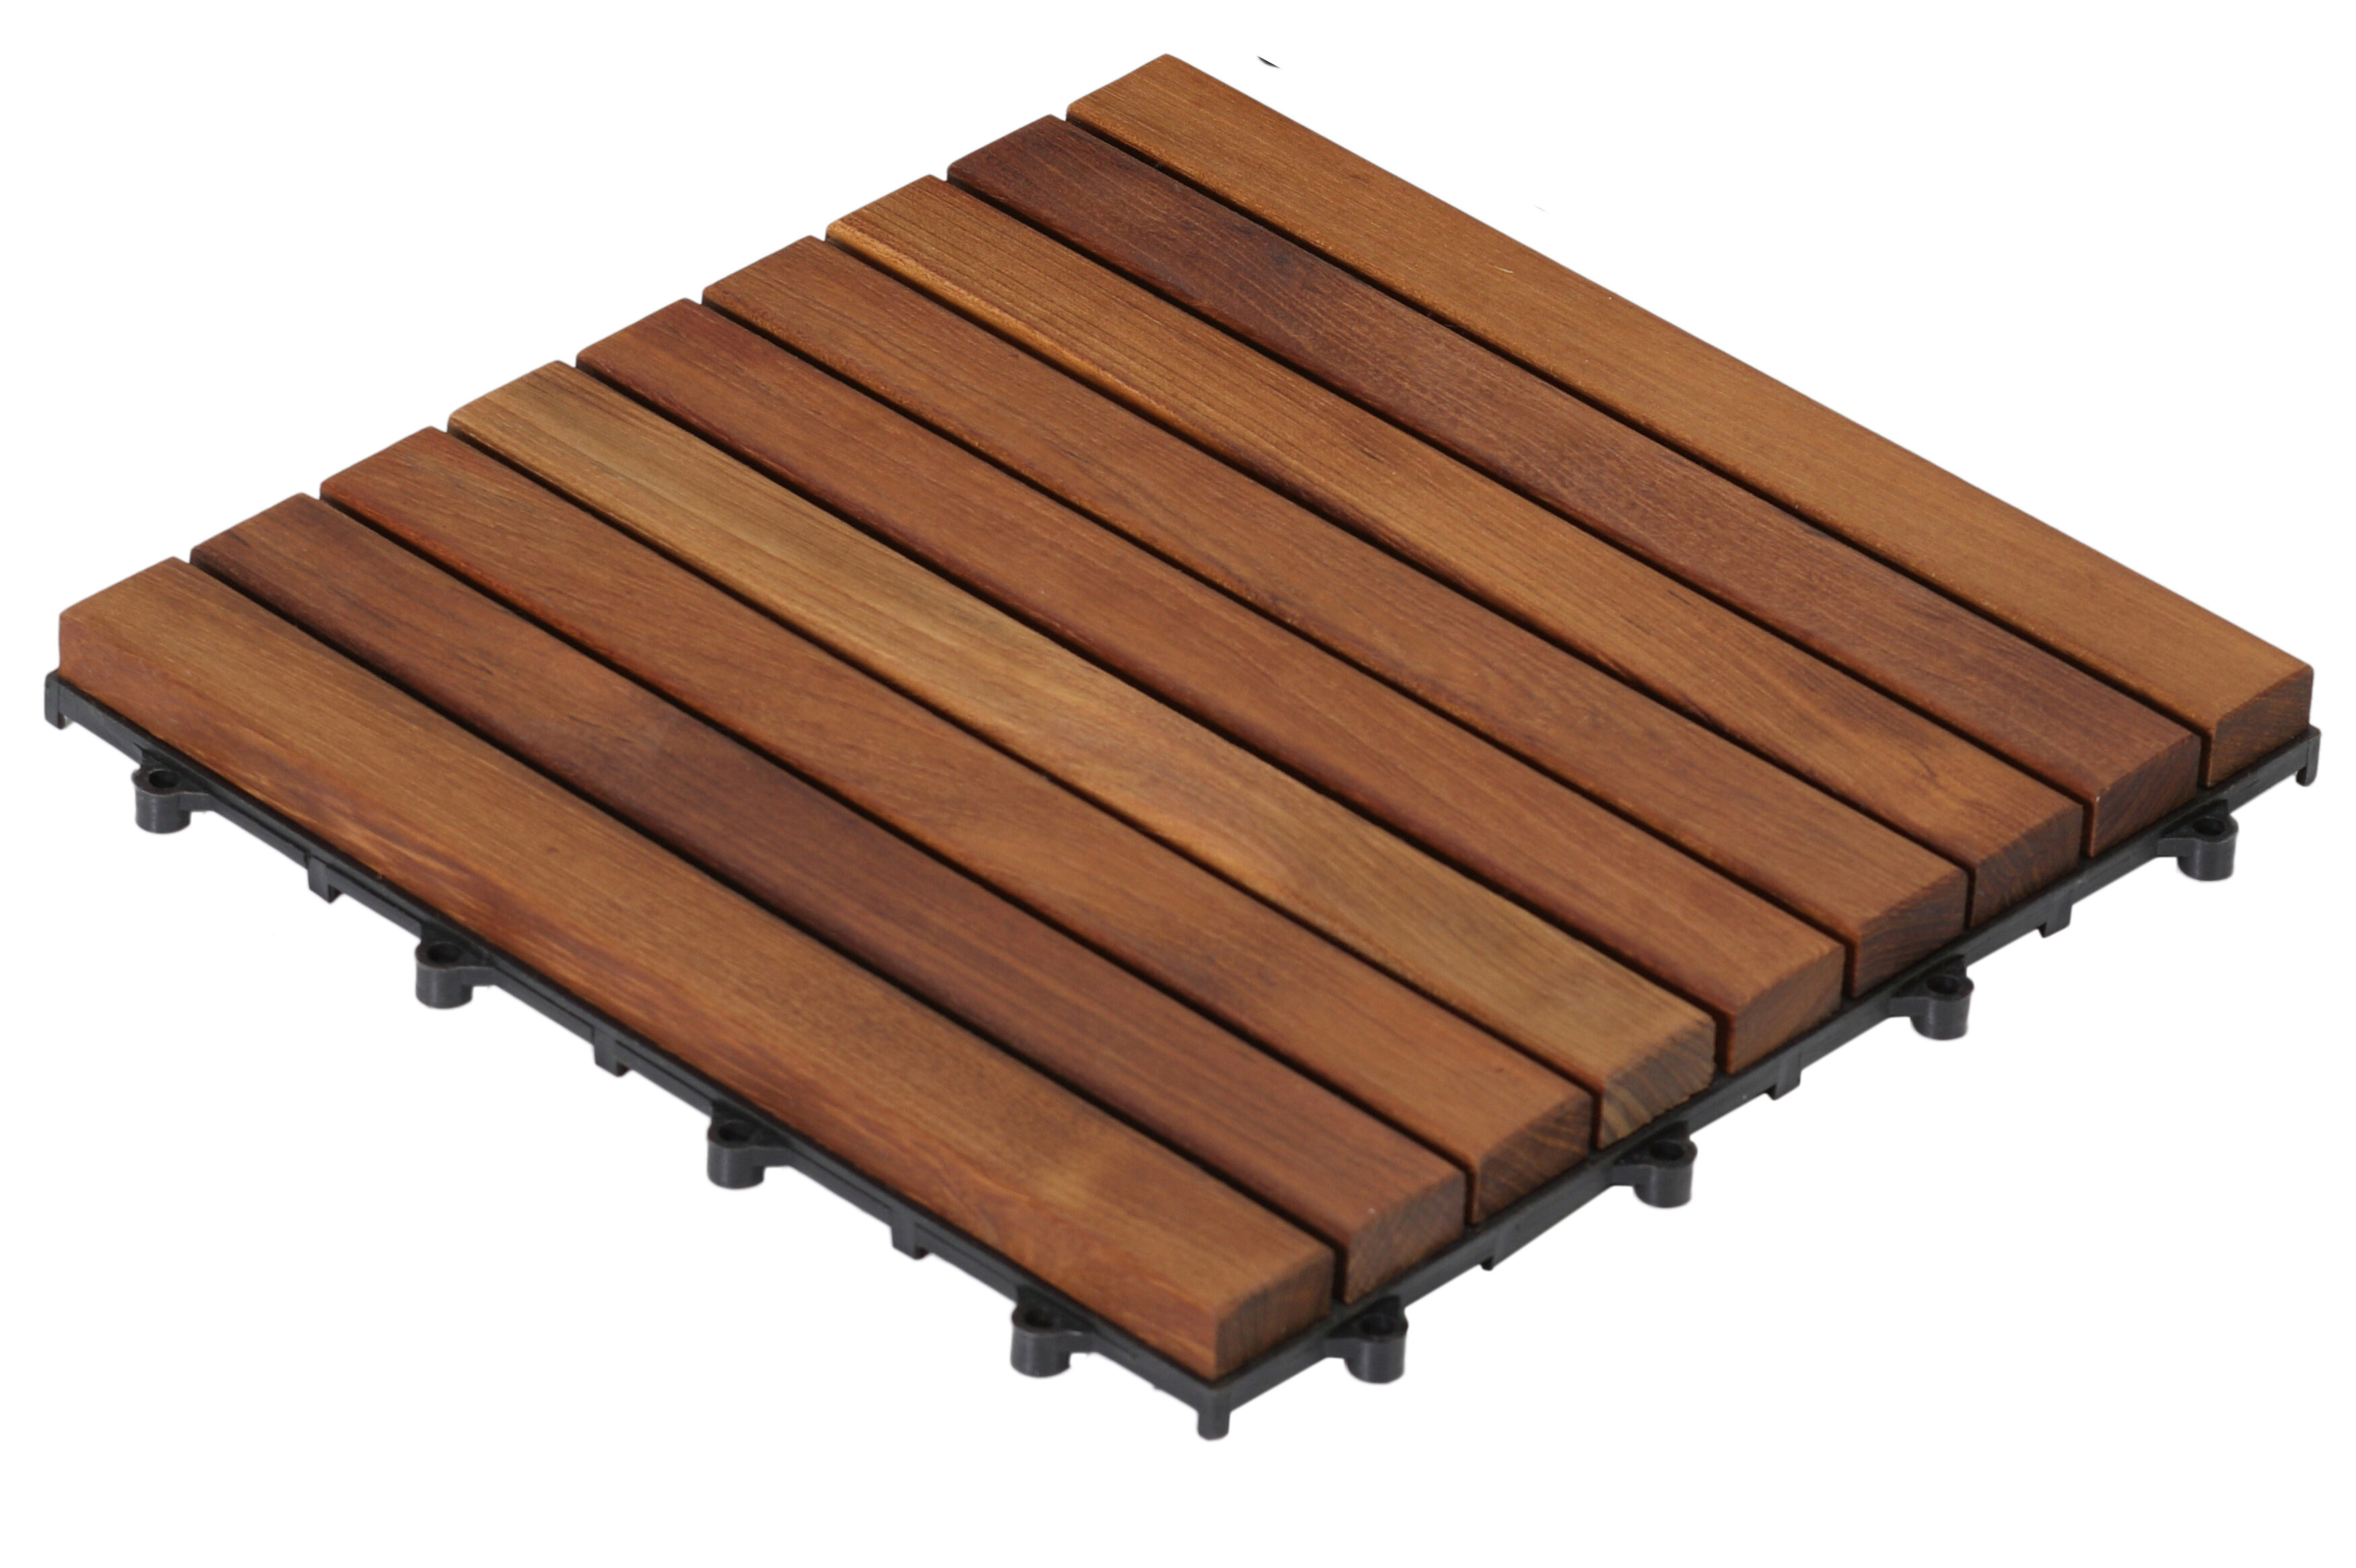 Teak Wood Snap In Deck Tiles